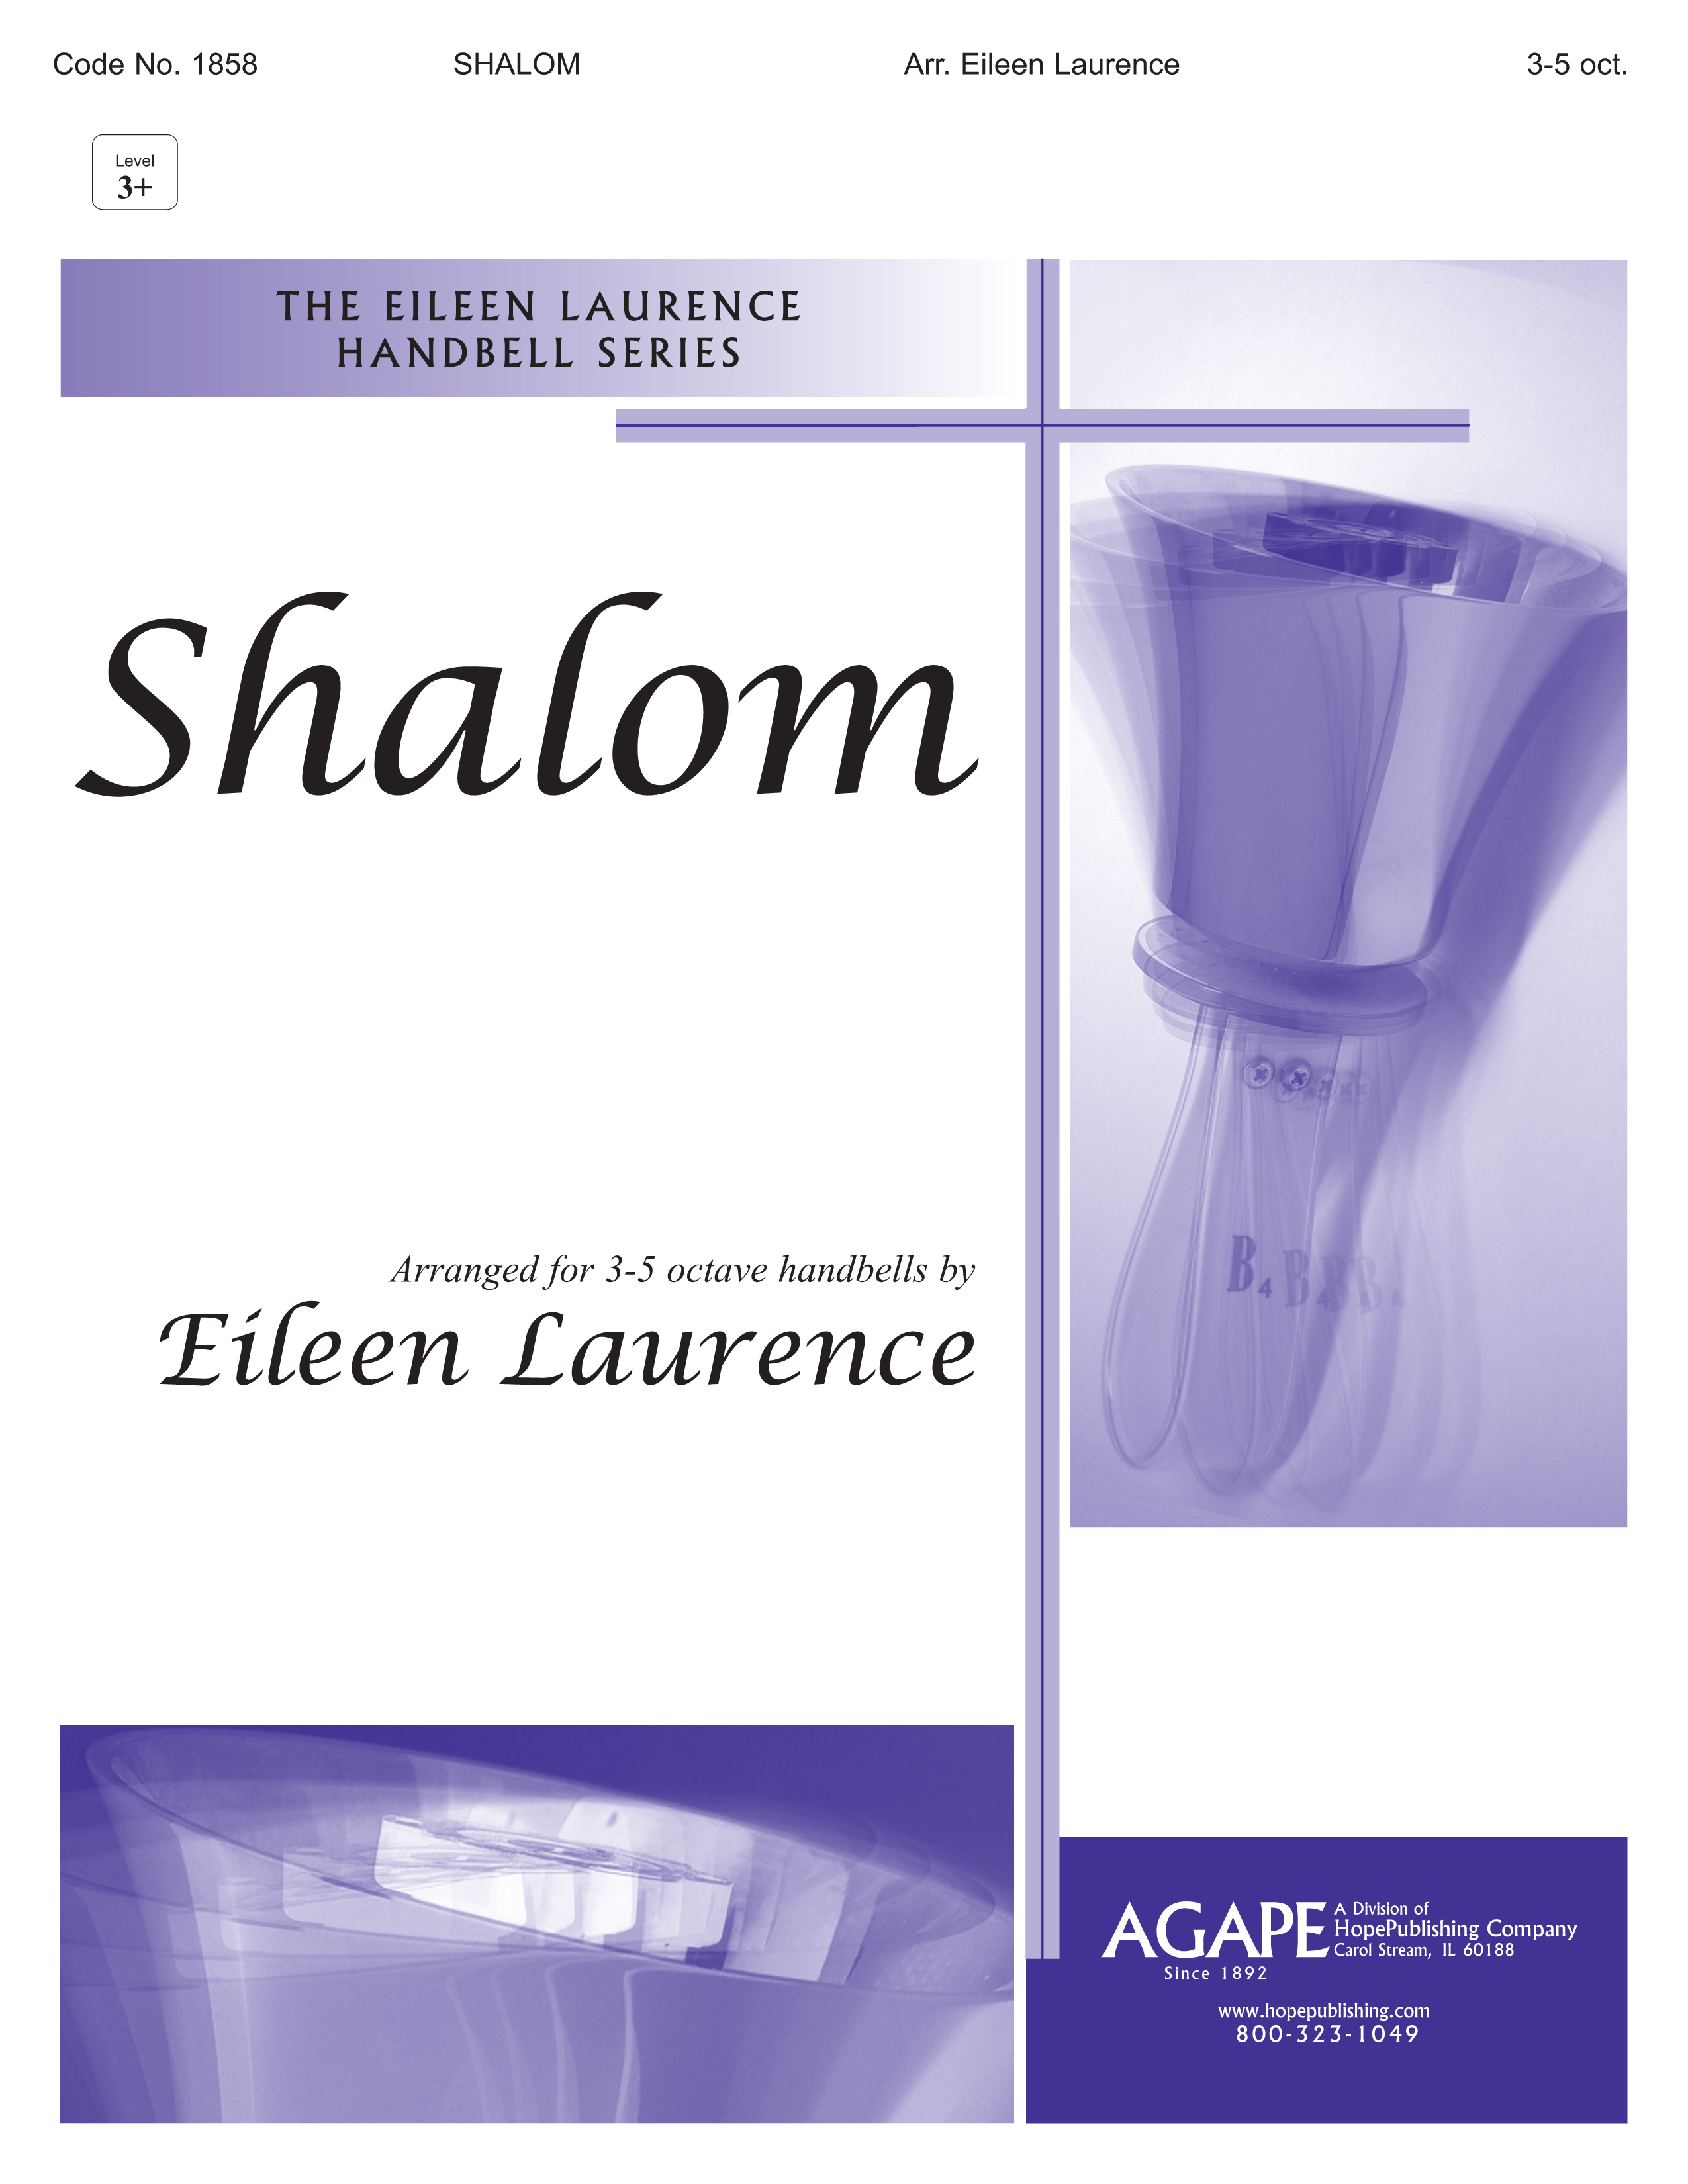 Shalom - 3-5 Oct. Cover Image